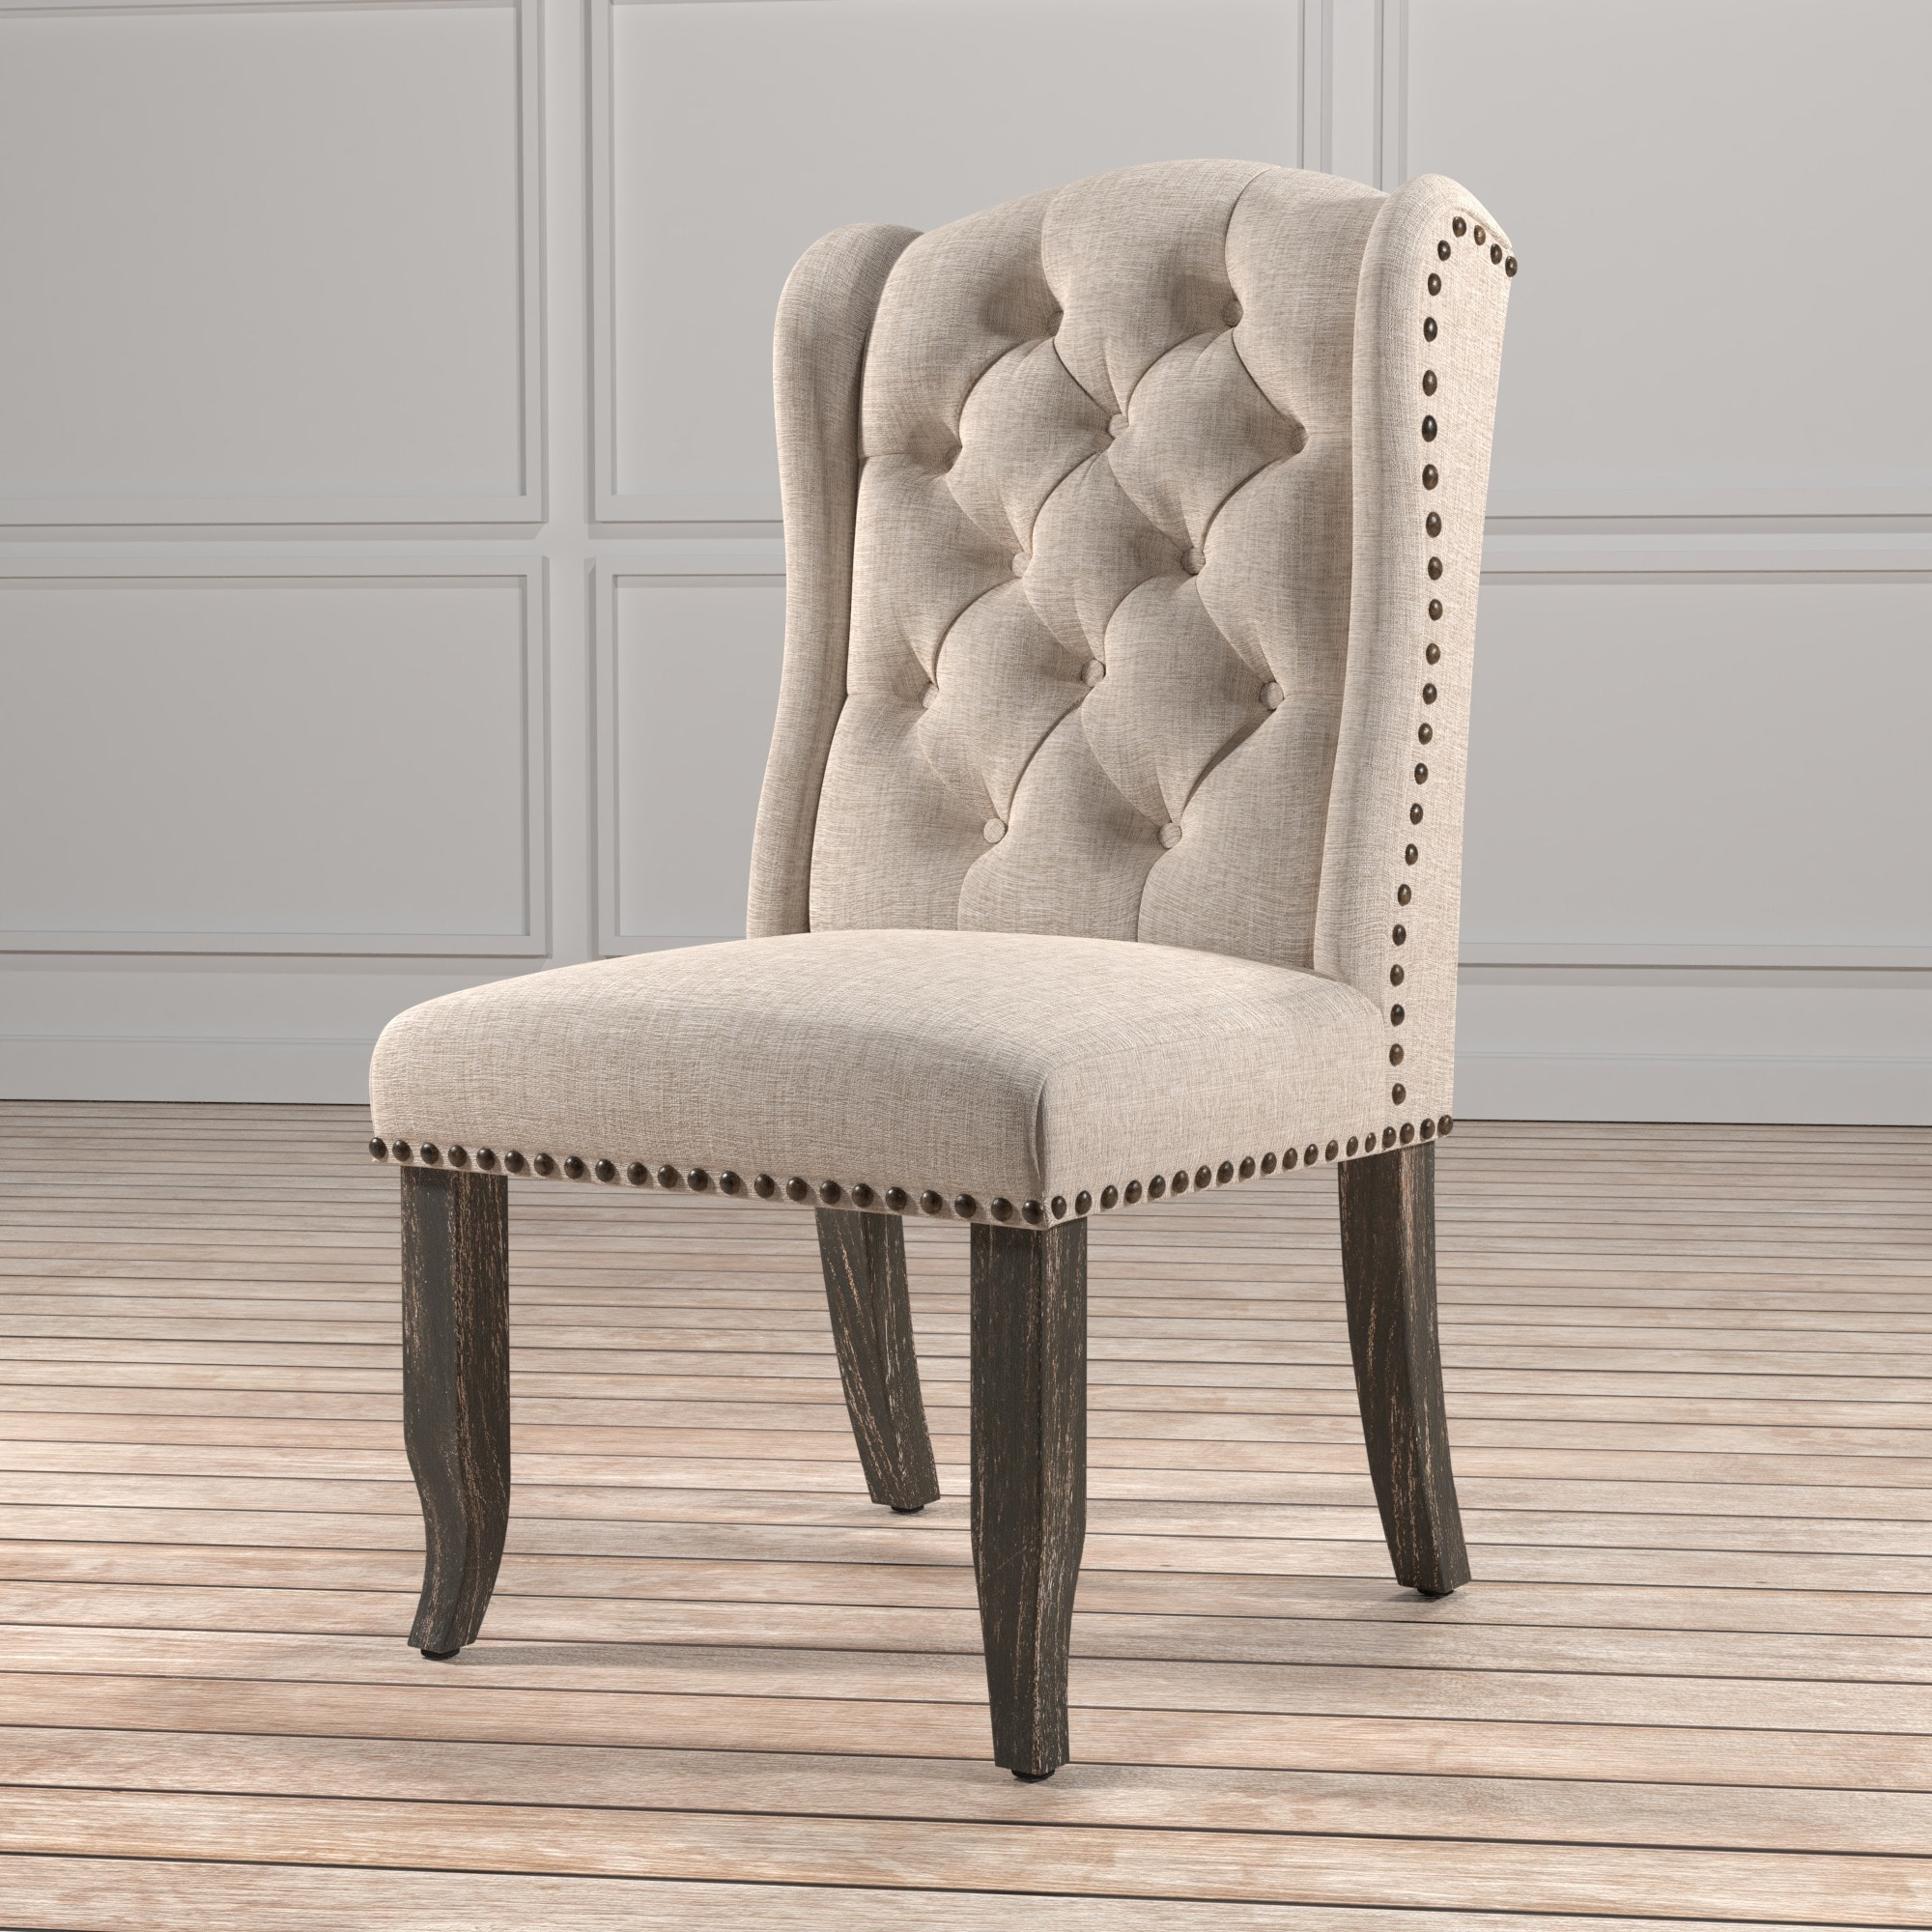 Furniture Of America Telara Tufted Wingback Dining Chair (Set Of